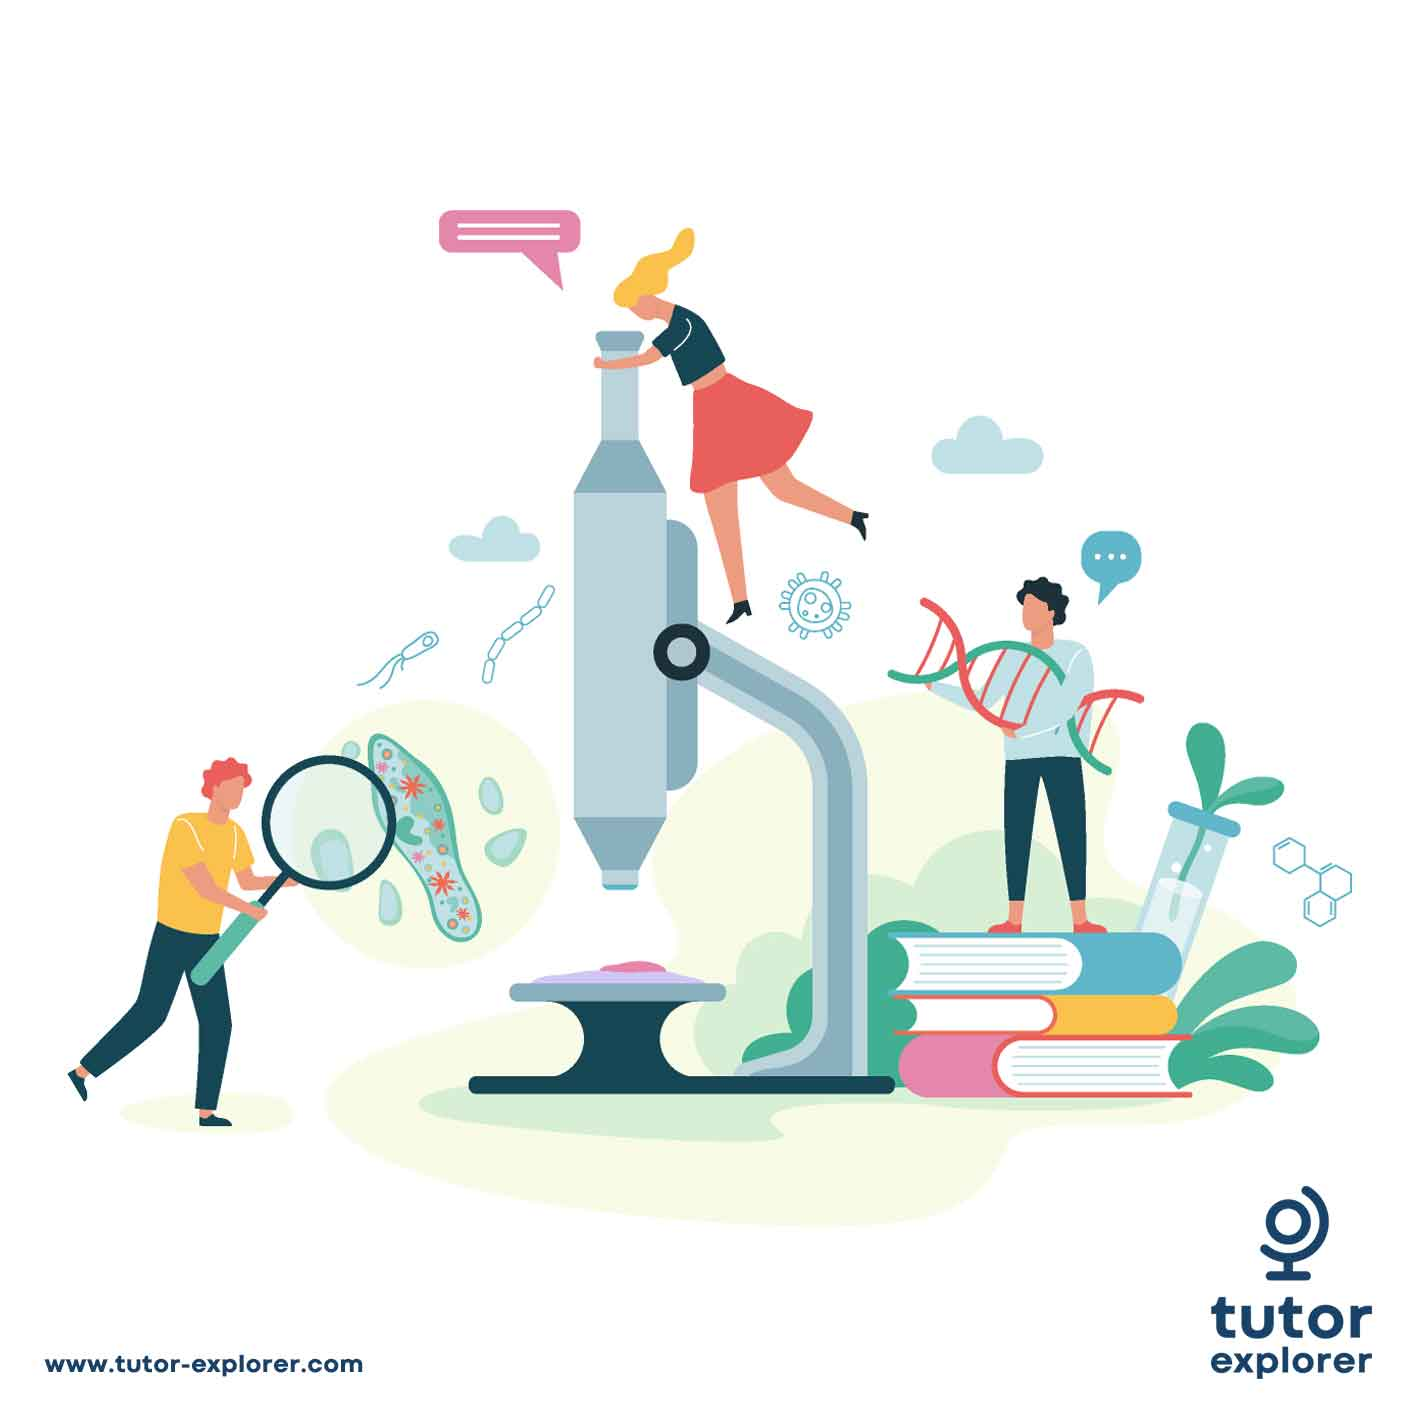 Tutor Explorer - Online And Home Based Tutors For One To One Private Tuition - www.tutor-explorer.com - Tutors For All Ages, Levels And Subjects At Pre-School - Primary School - Secondary School - College - University - Adult Learning Levels